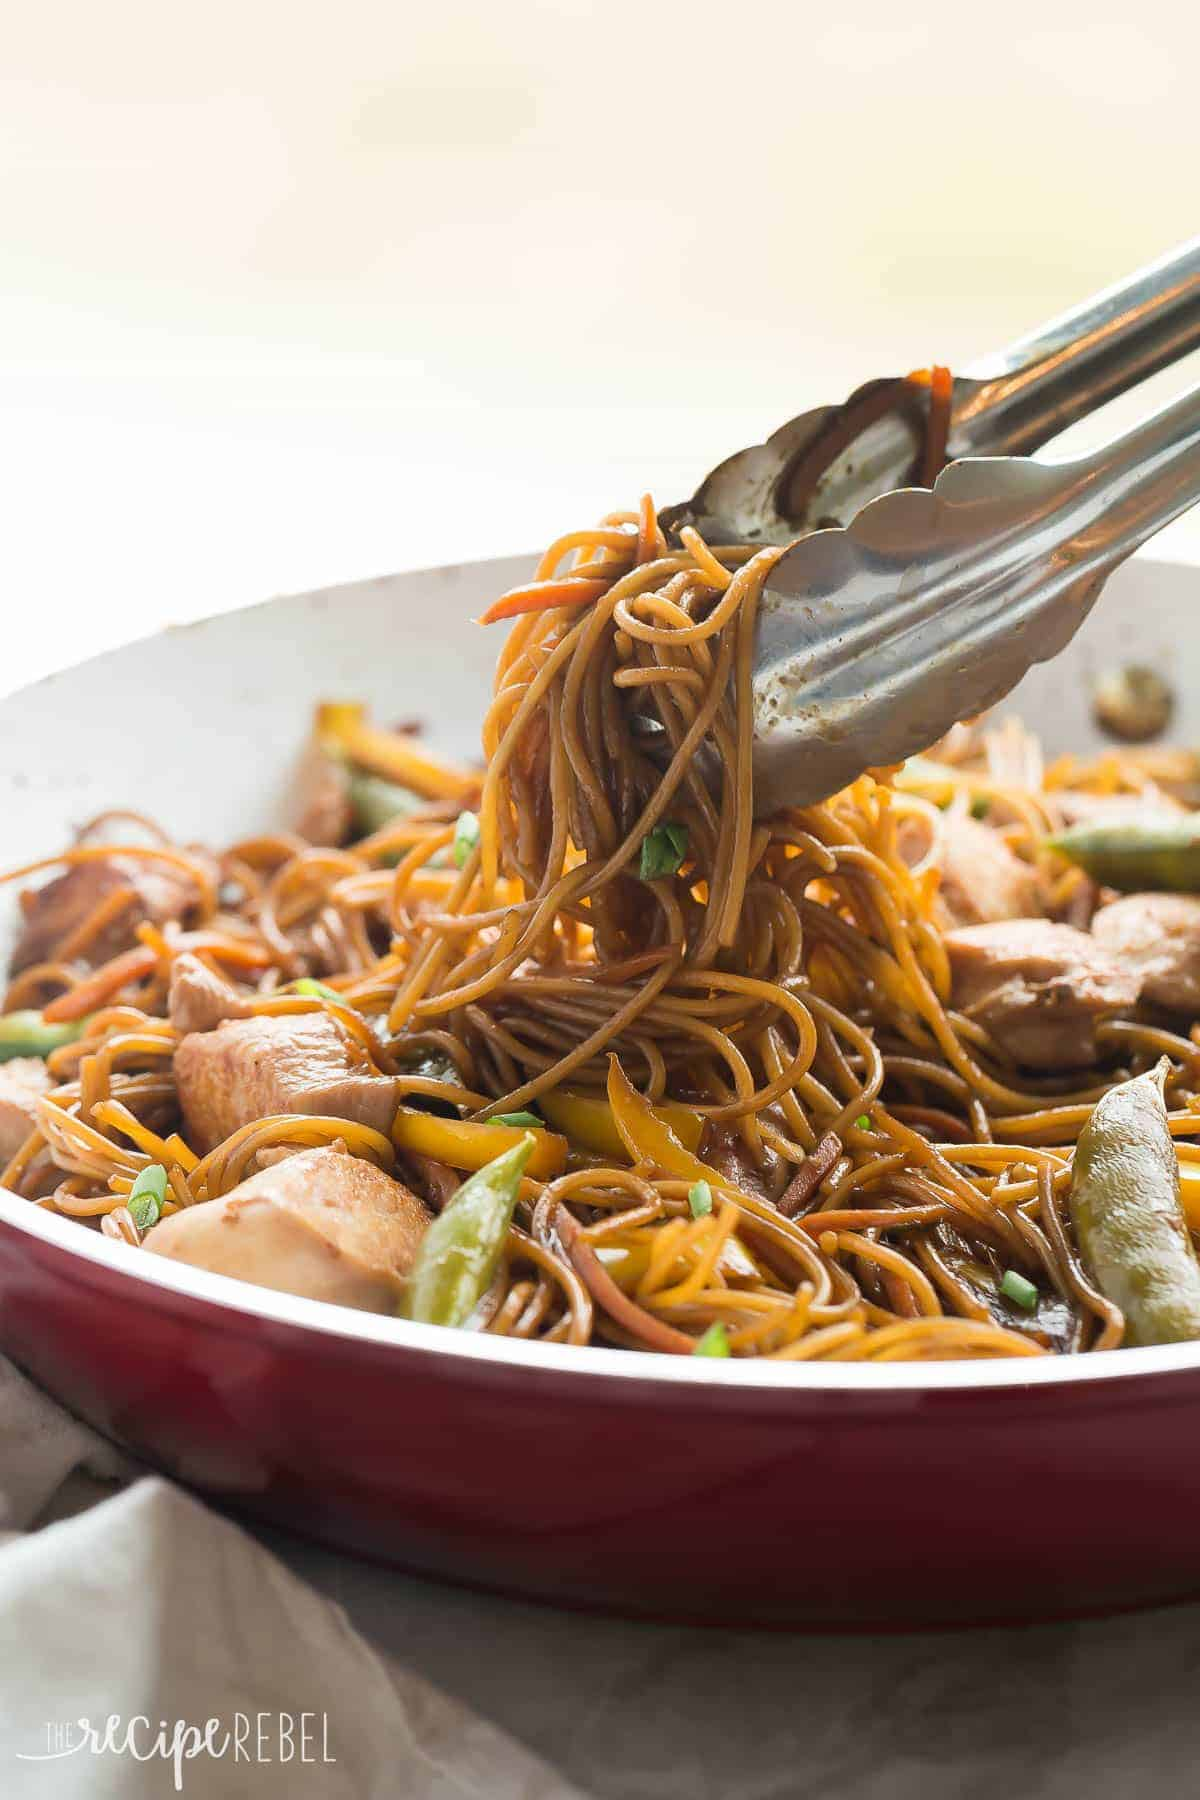 This easy, One Pot Teriyaki Chicken and Noodles is better than any takeout! It's healthier and loaded with veggies, with fewer dishes to wash! PLUS a step by step video! https://www.thereciperebel.com/one-pot-teriyaki-chicken-and-noodles/